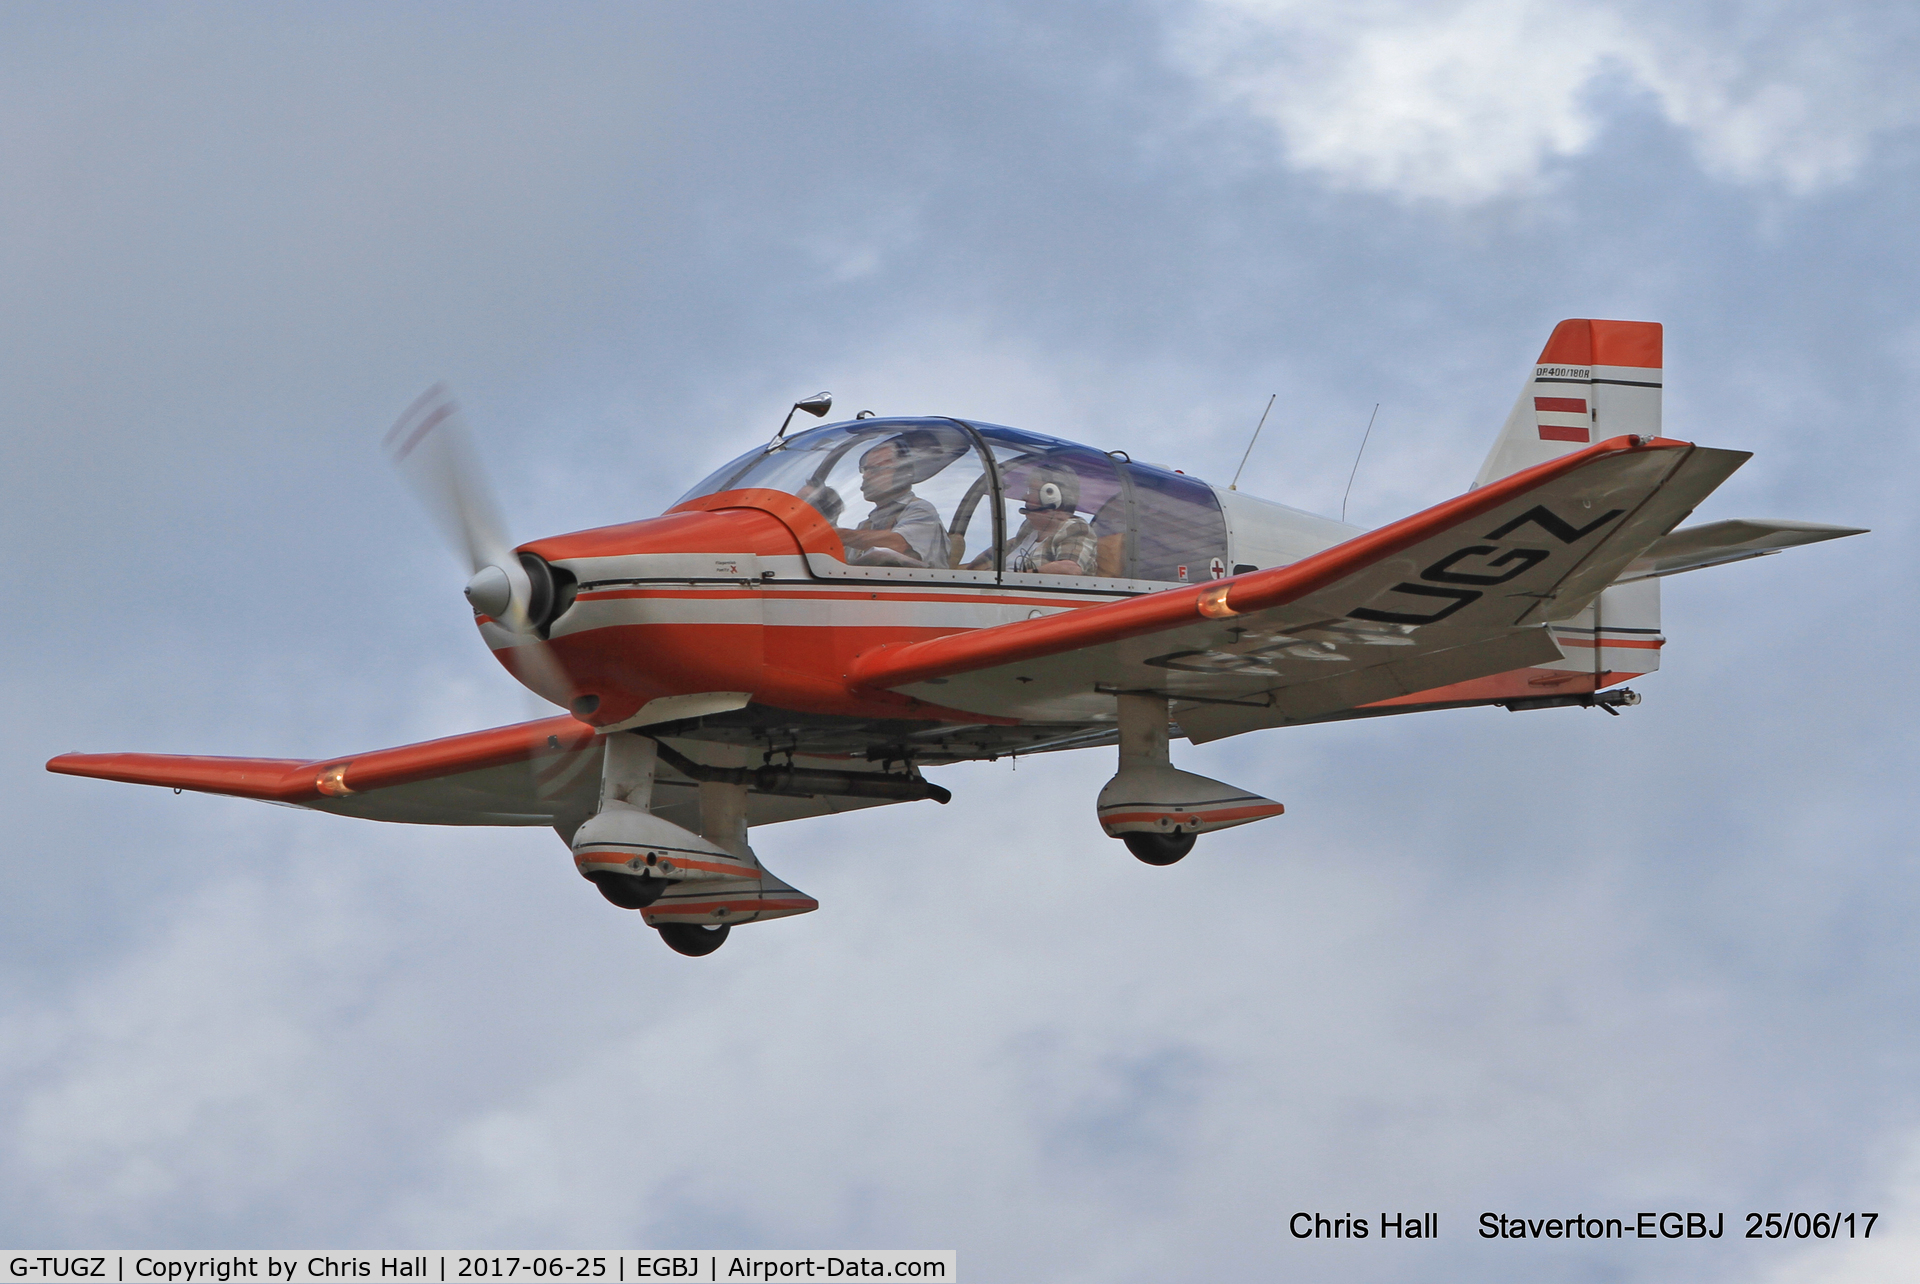 G-TUGZ, 1975 Robin DR-400-180R Remorqueur C/N 1030, Project Propeller at Staverton